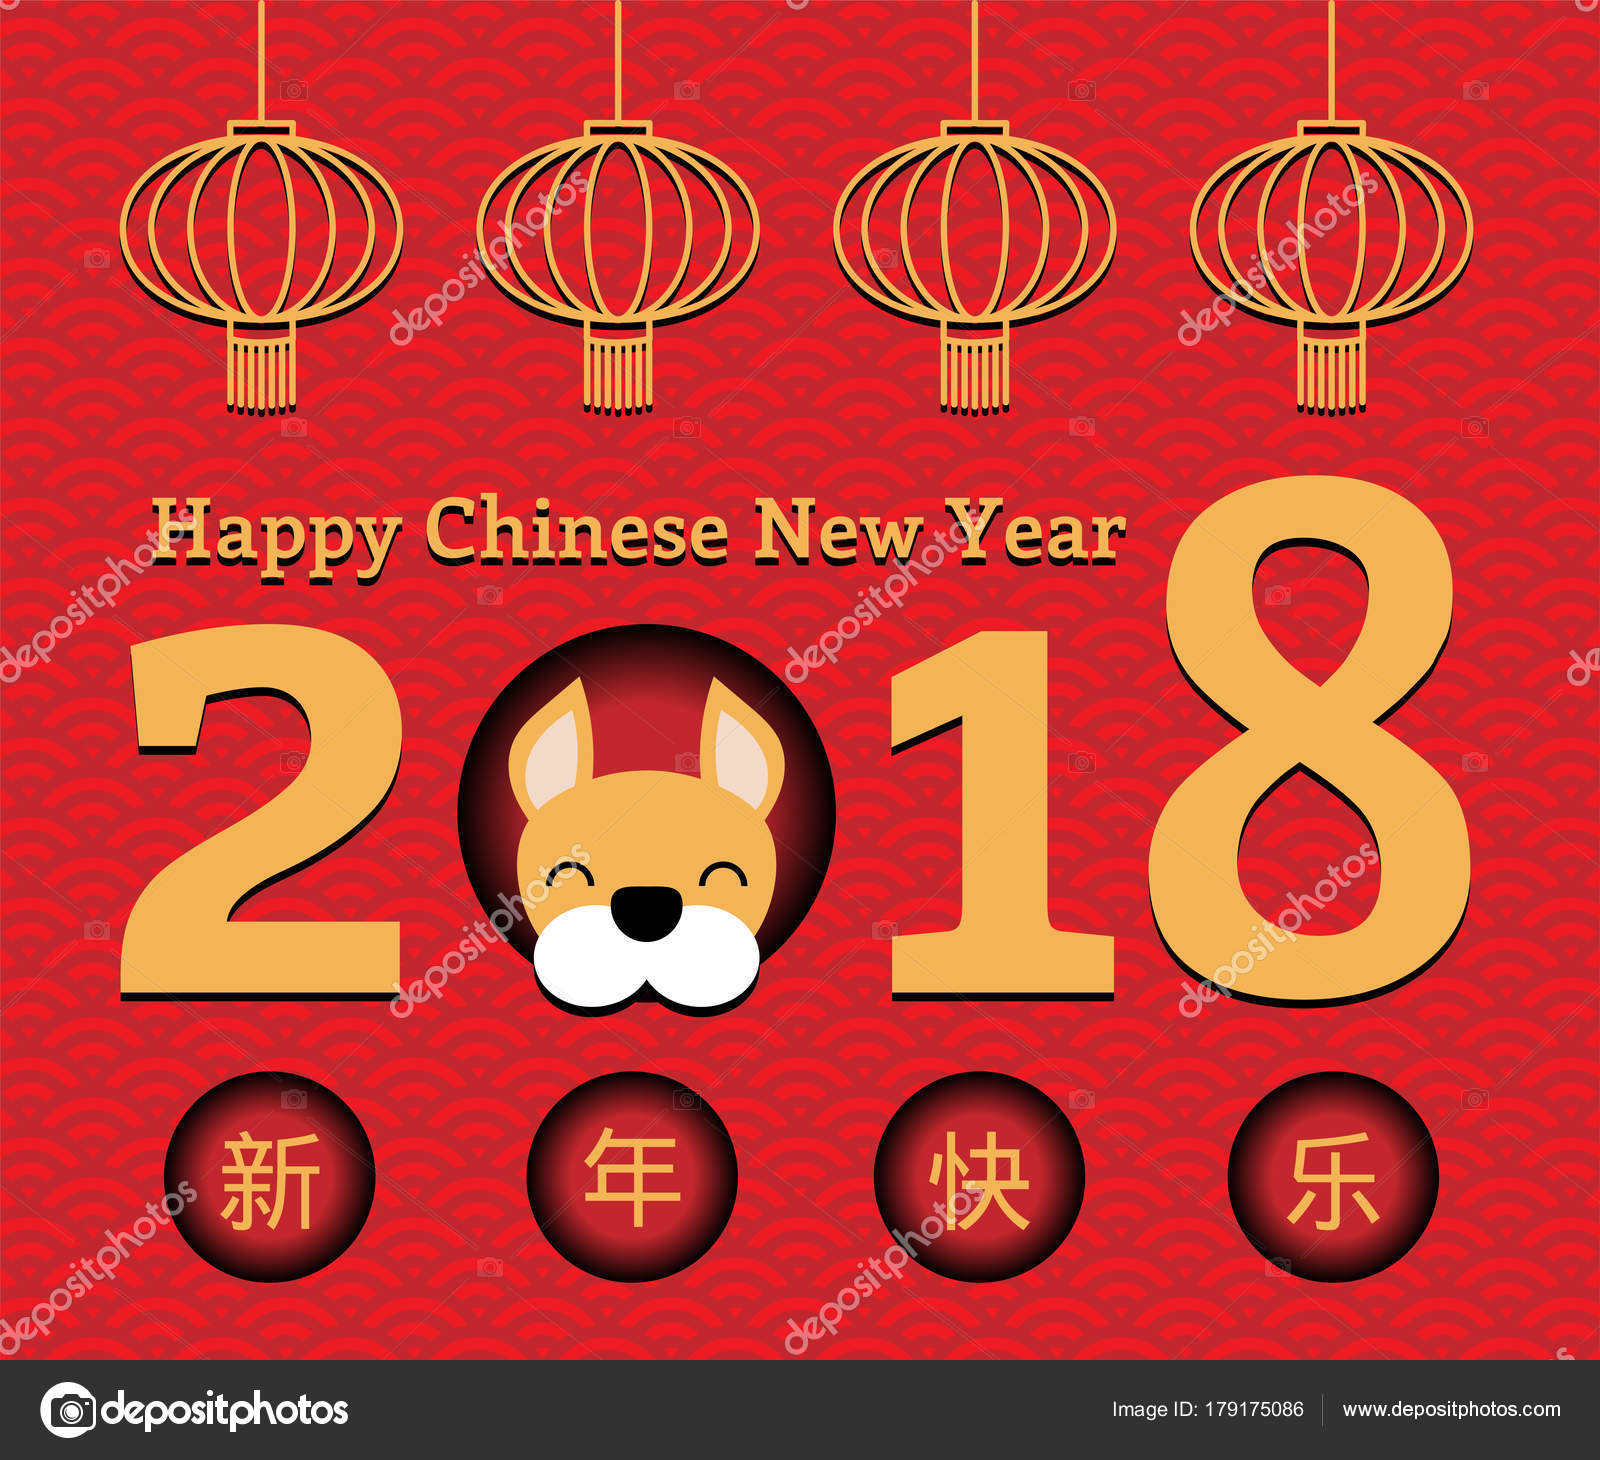 2018 Chinese New Year Greeting Card Stock Vector Mariaskrigan